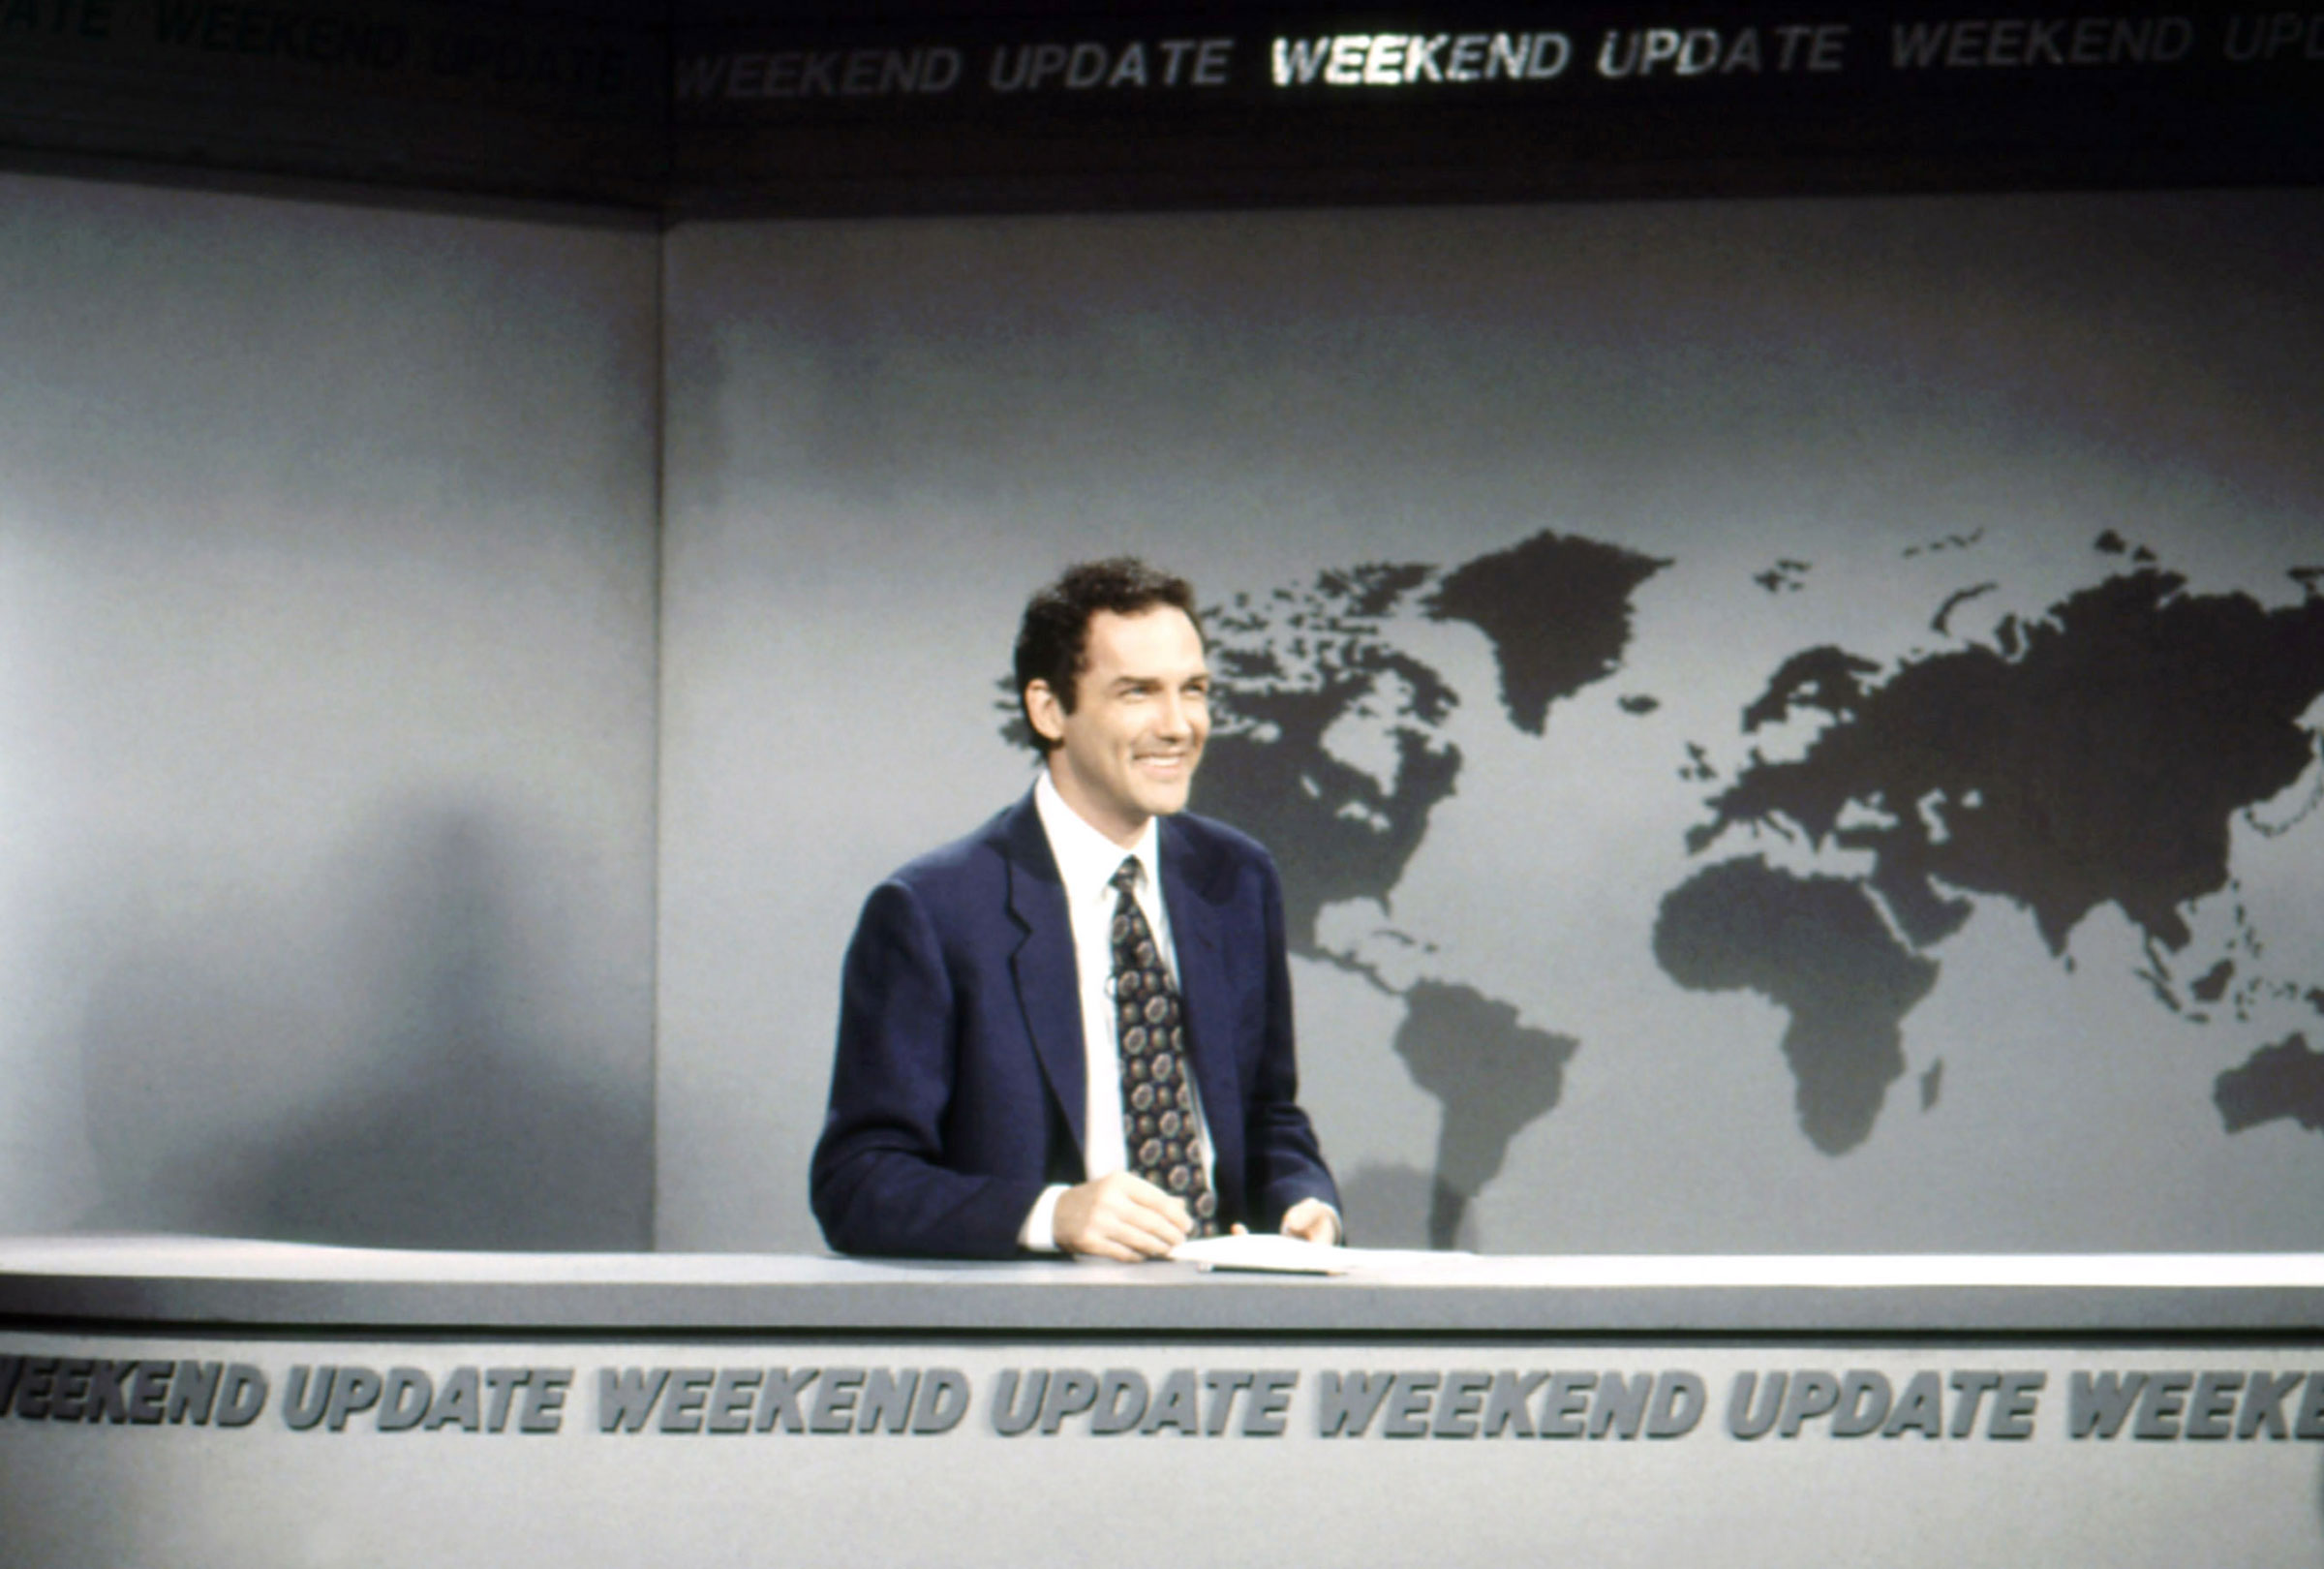 Norm Macdonald during the Weekend Update segment on Saturday Night Live on Dec. 14, 1996.